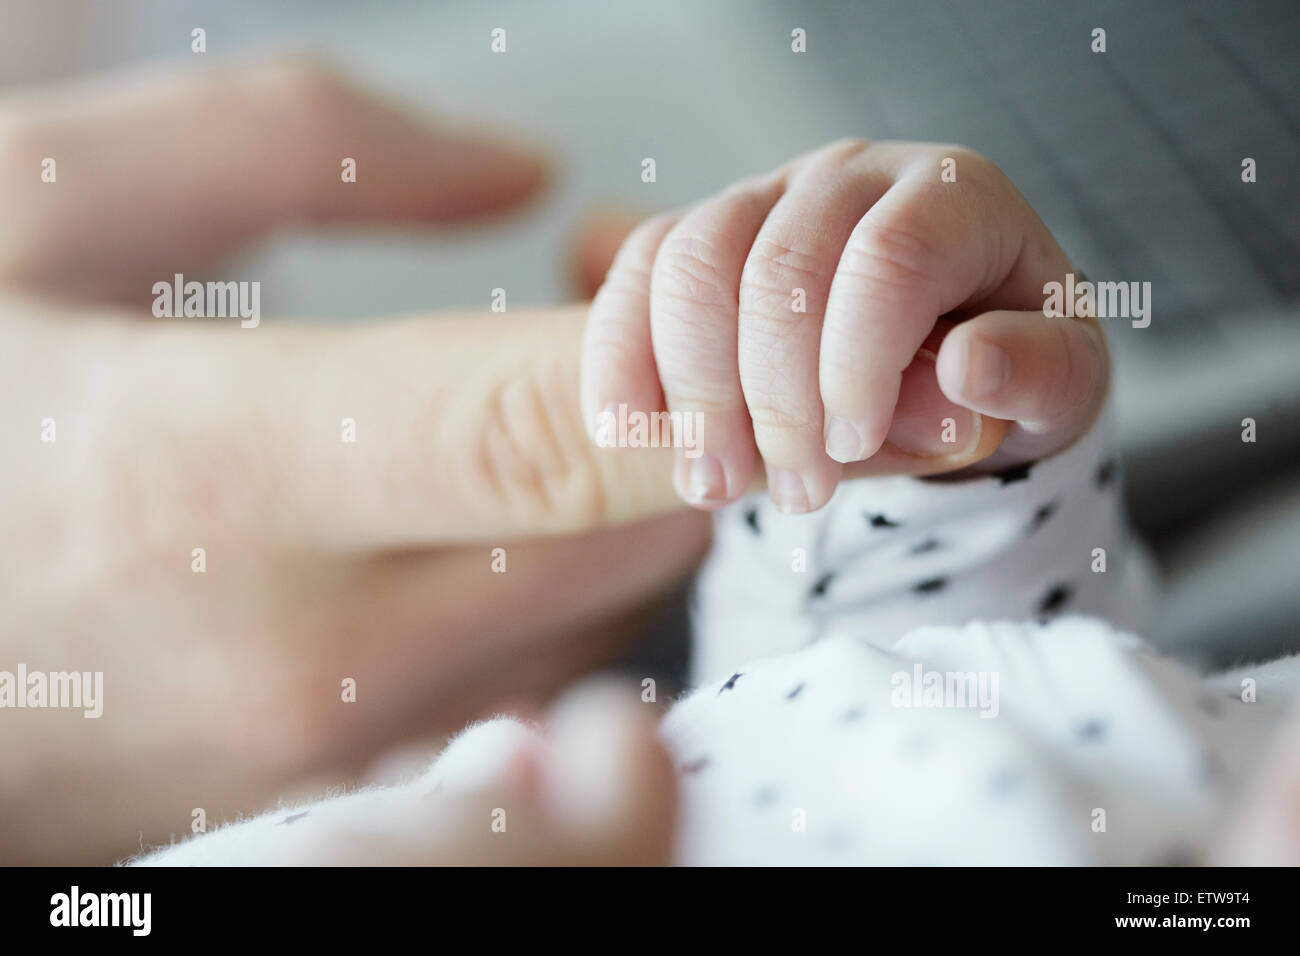 Close-up of baby holding father's finger - Stock Image